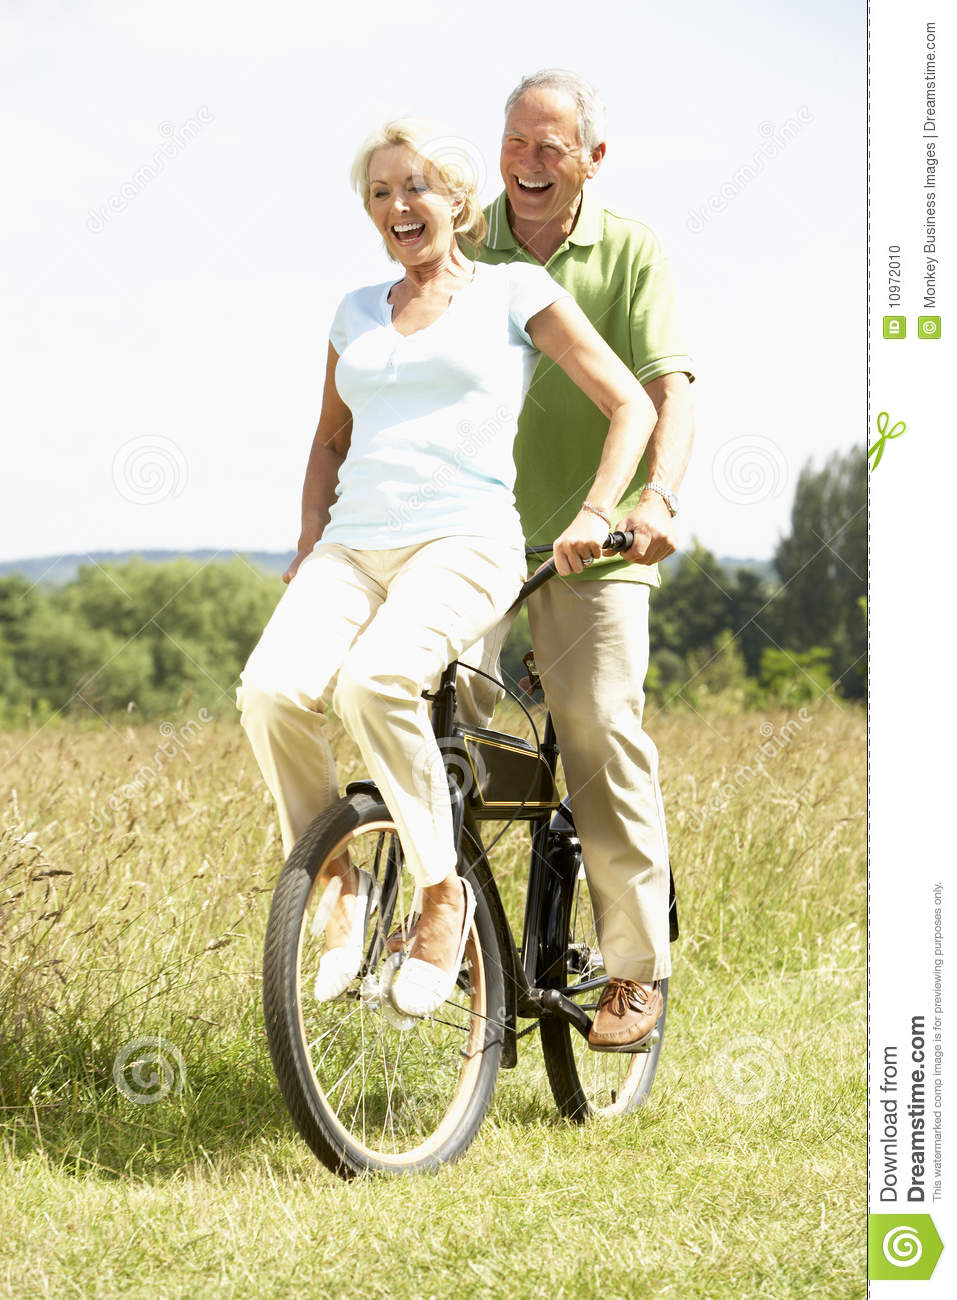 mature couple riding bike in countryside stock photo - image of